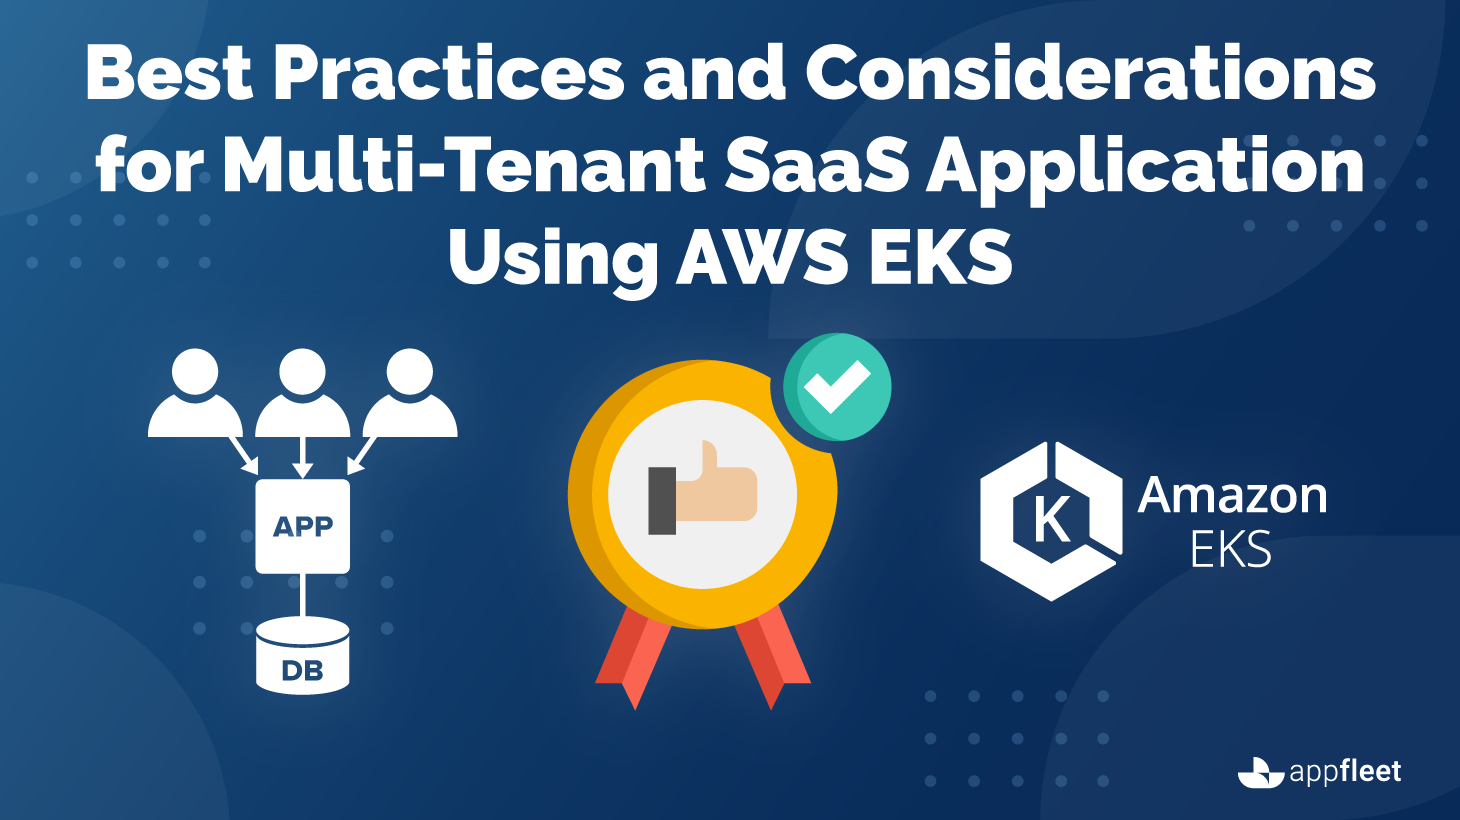 Best Practices and Considerations for Multi-Tenant SaaS Application Using AWS EKS